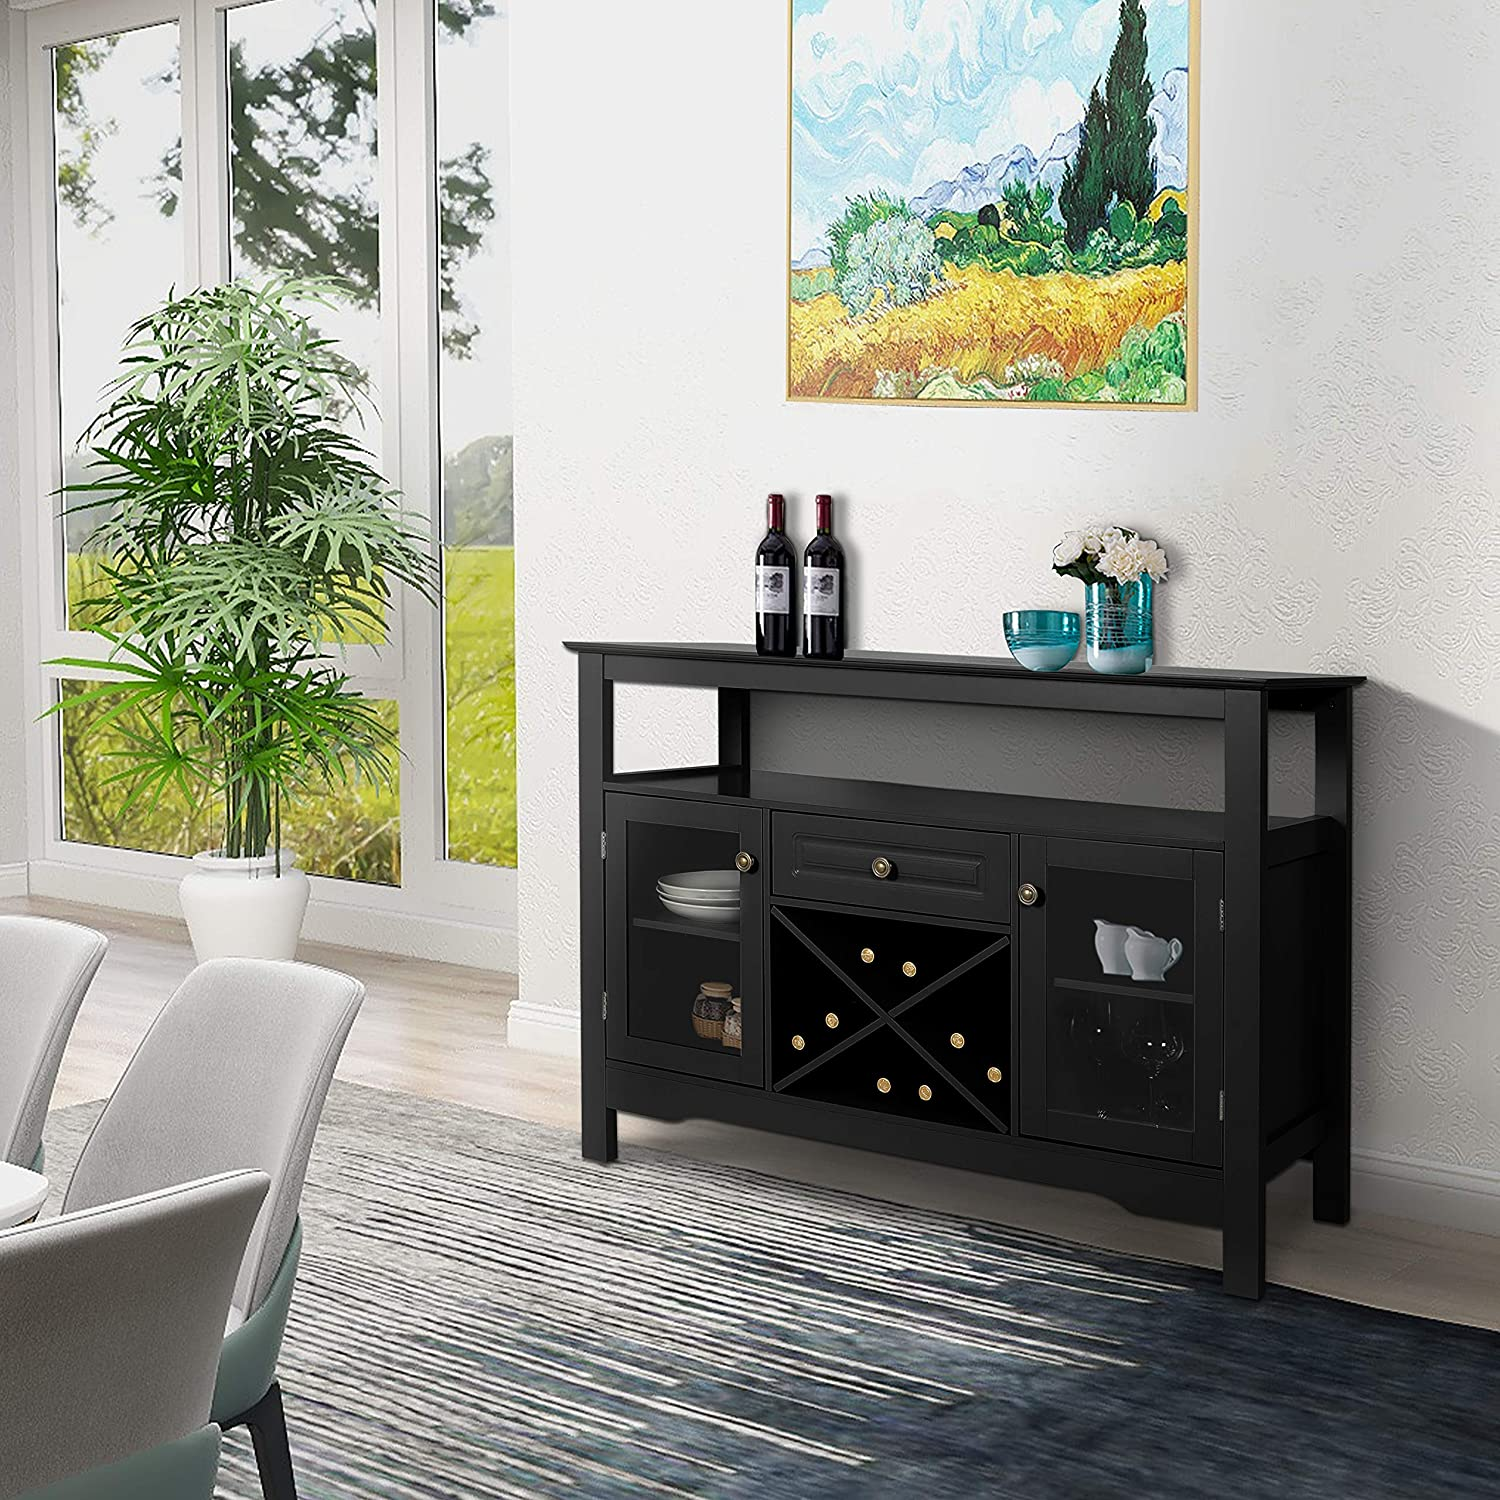 Adjustable Shelf /& Glass Display Cabinet Home Kitchen Dining Room/Buffet Cupboard Table with Storage Drawer Black Sideboard Wine/Cabinet Black